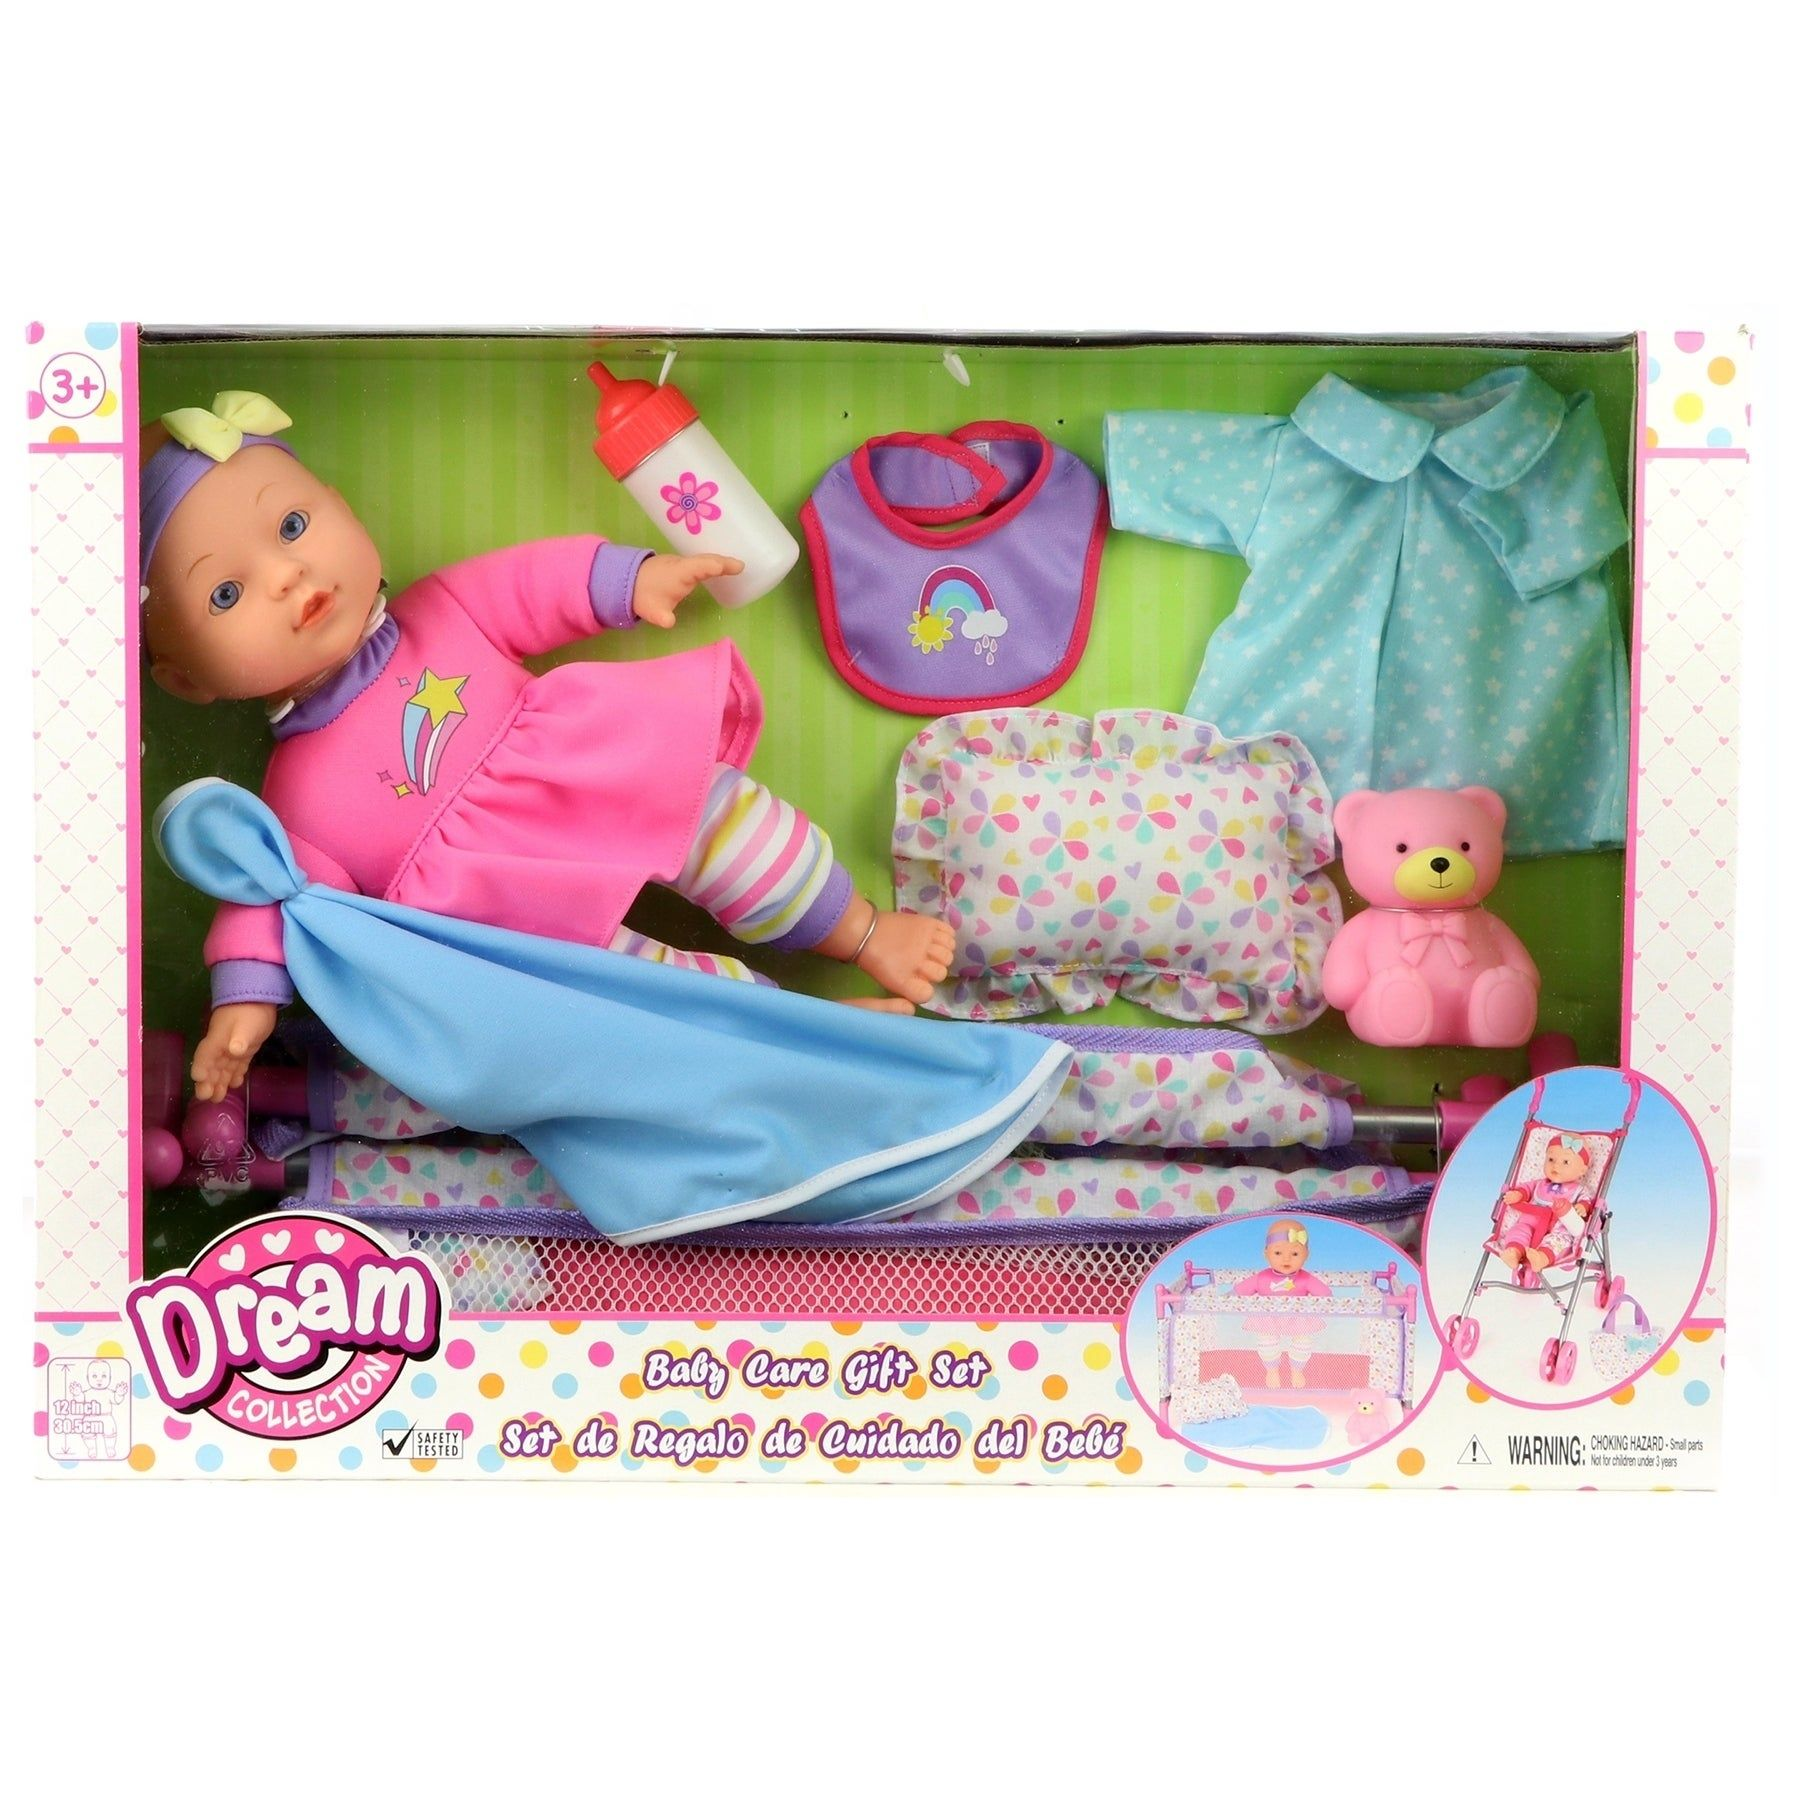 Overstock.com: Online Shopping - Bedding, Furniture, Electronics, Jewelry, Clothing & more #dollcare